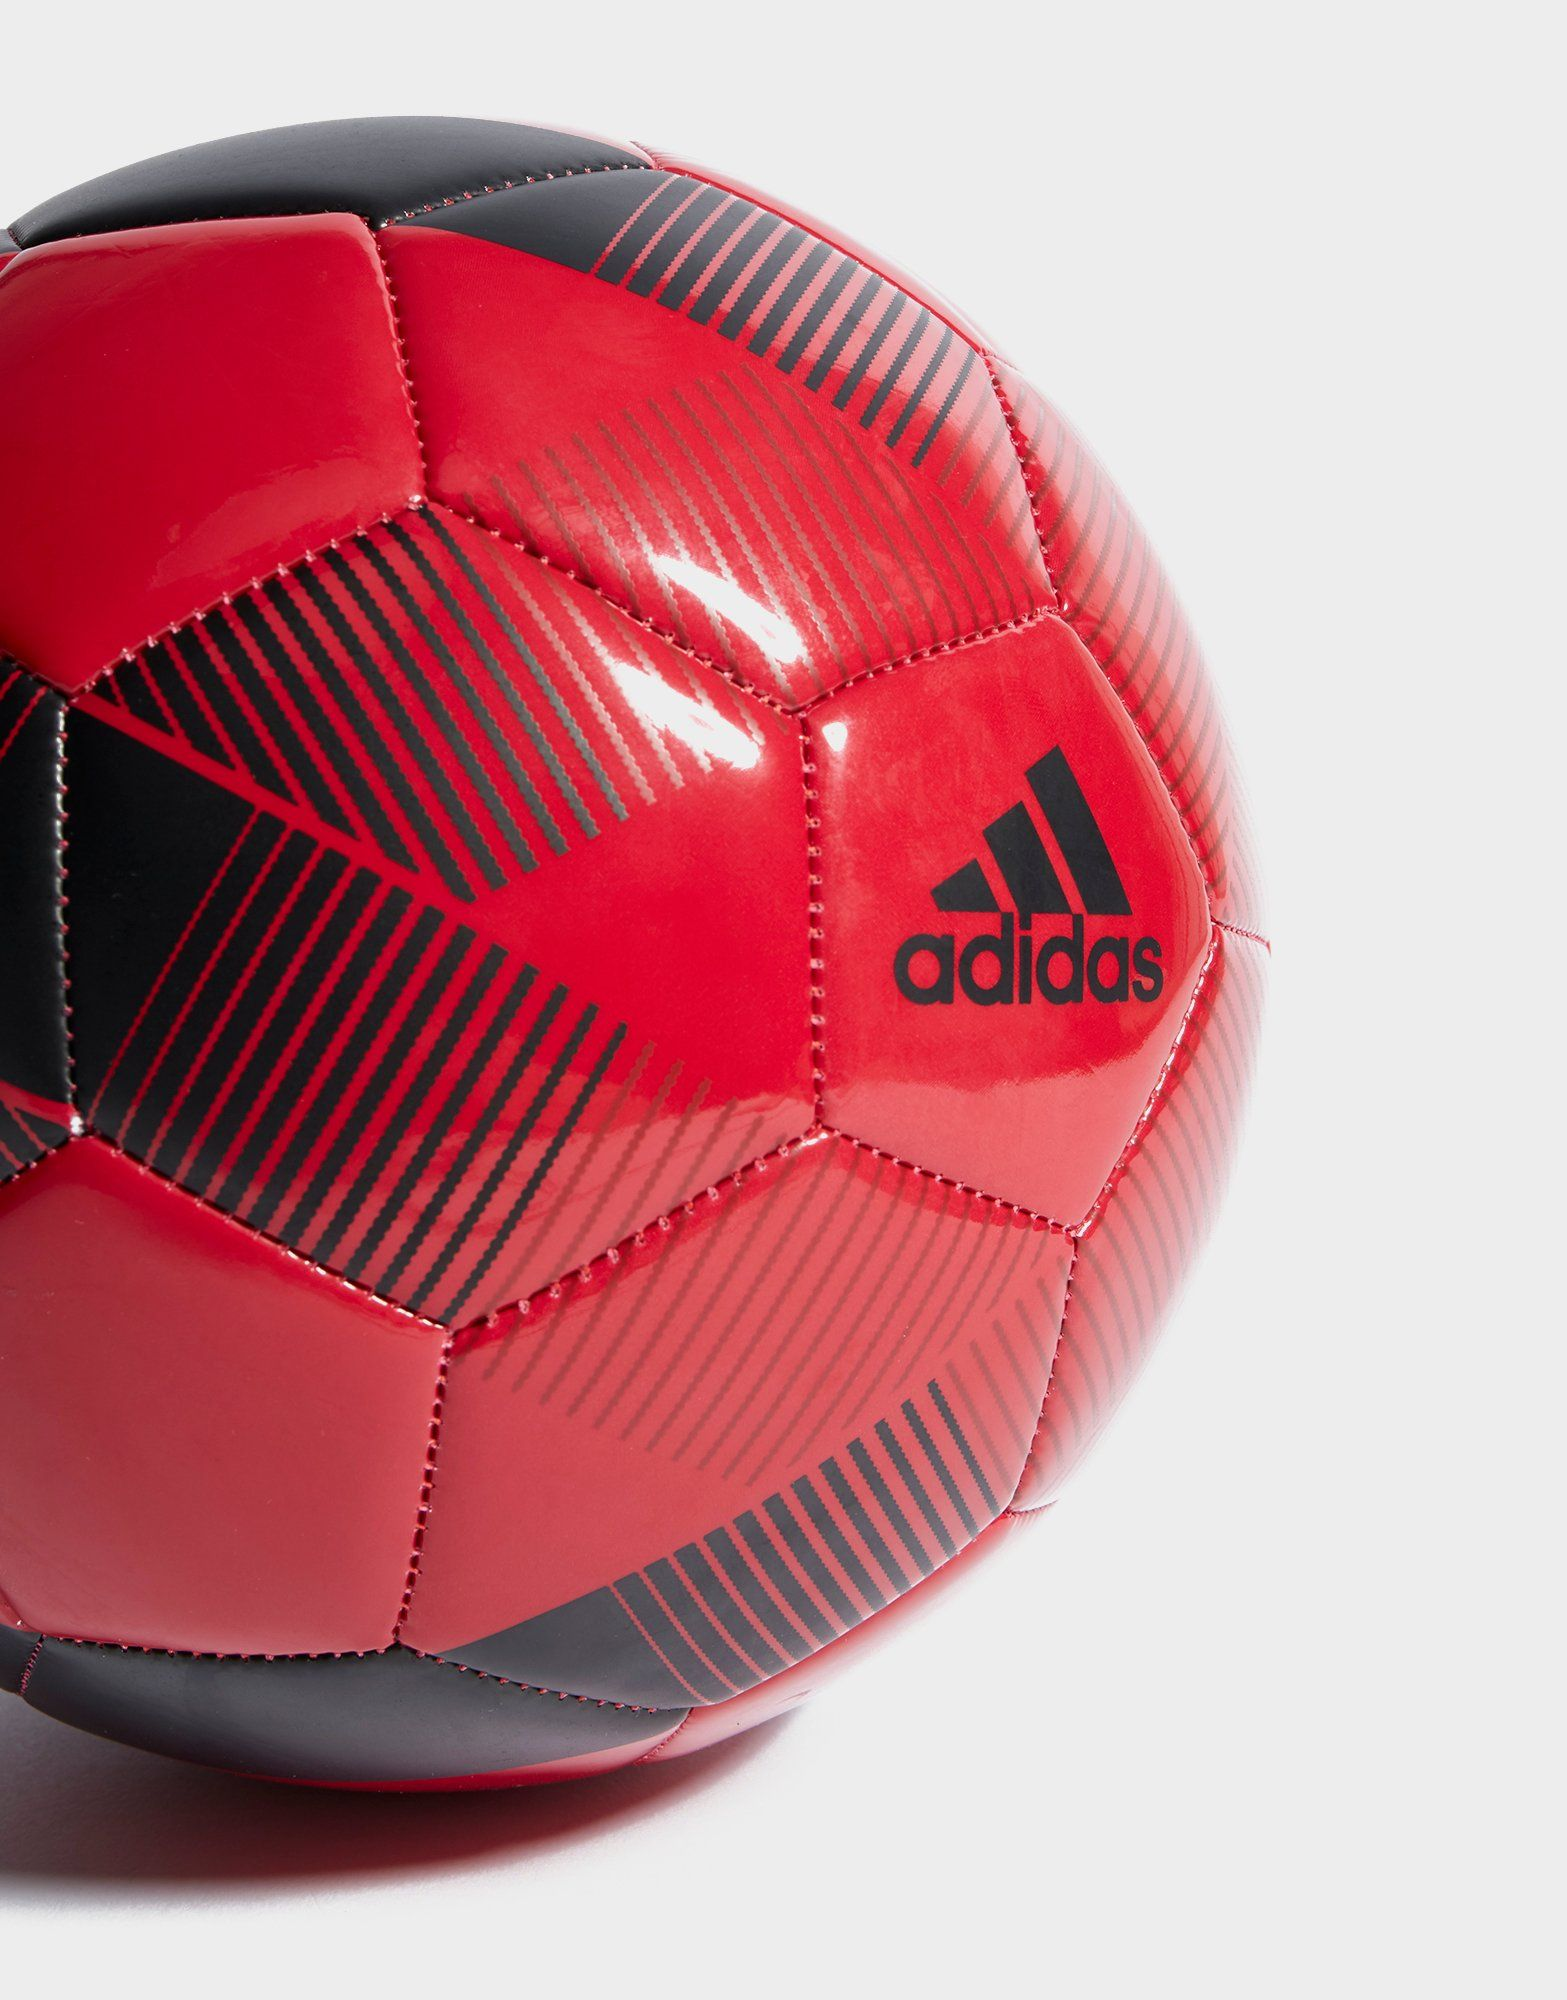 adidas Manchester United FC Football